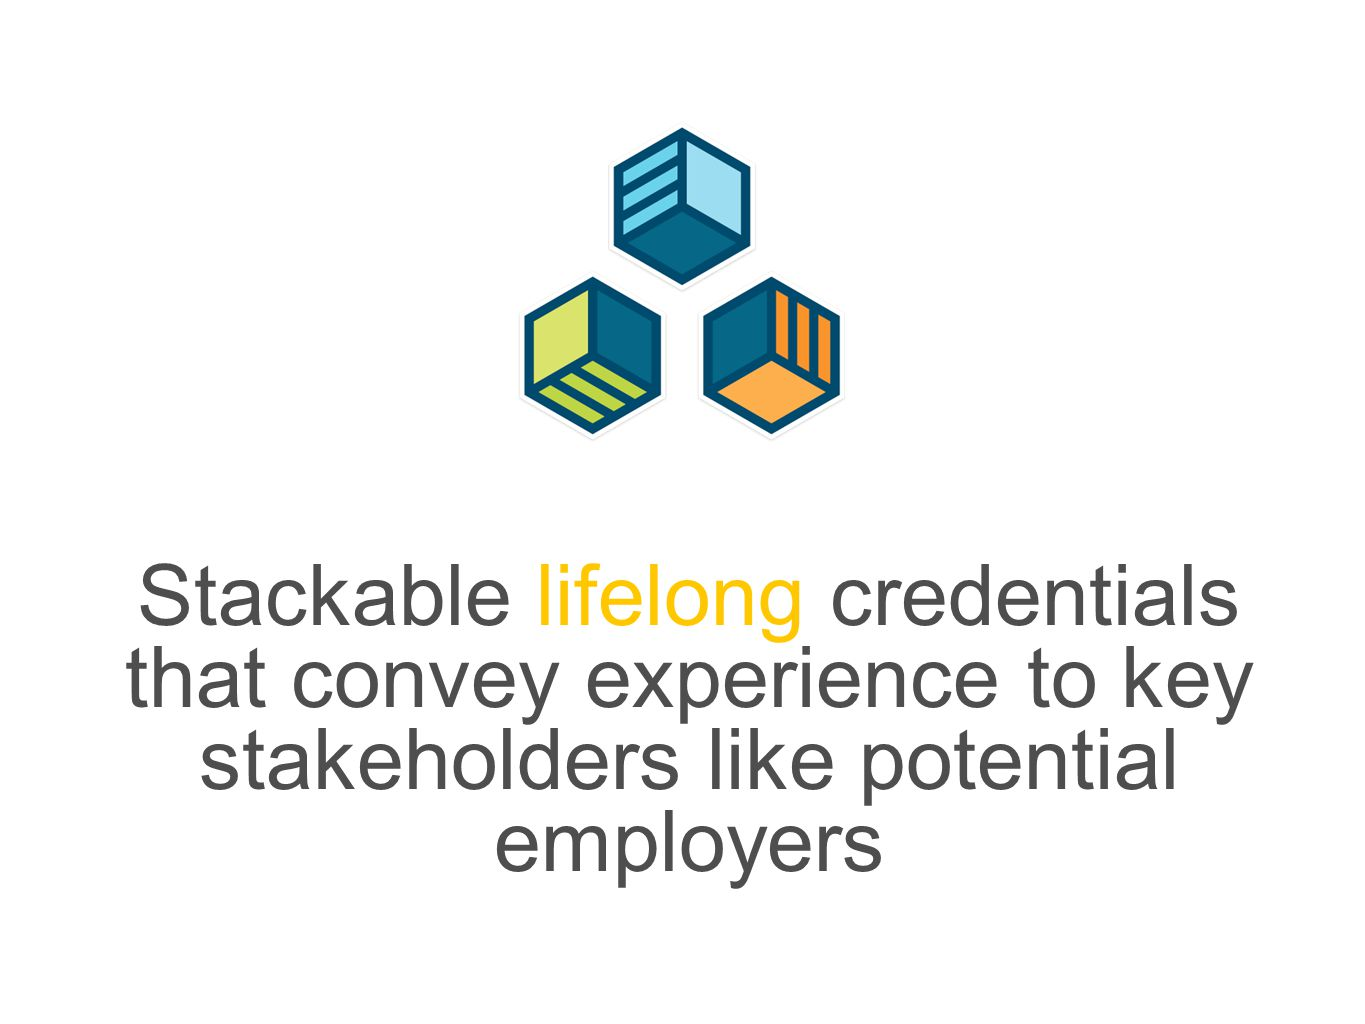 Stackable lifelong credentials that convey experience to key stakeholders like potential employers